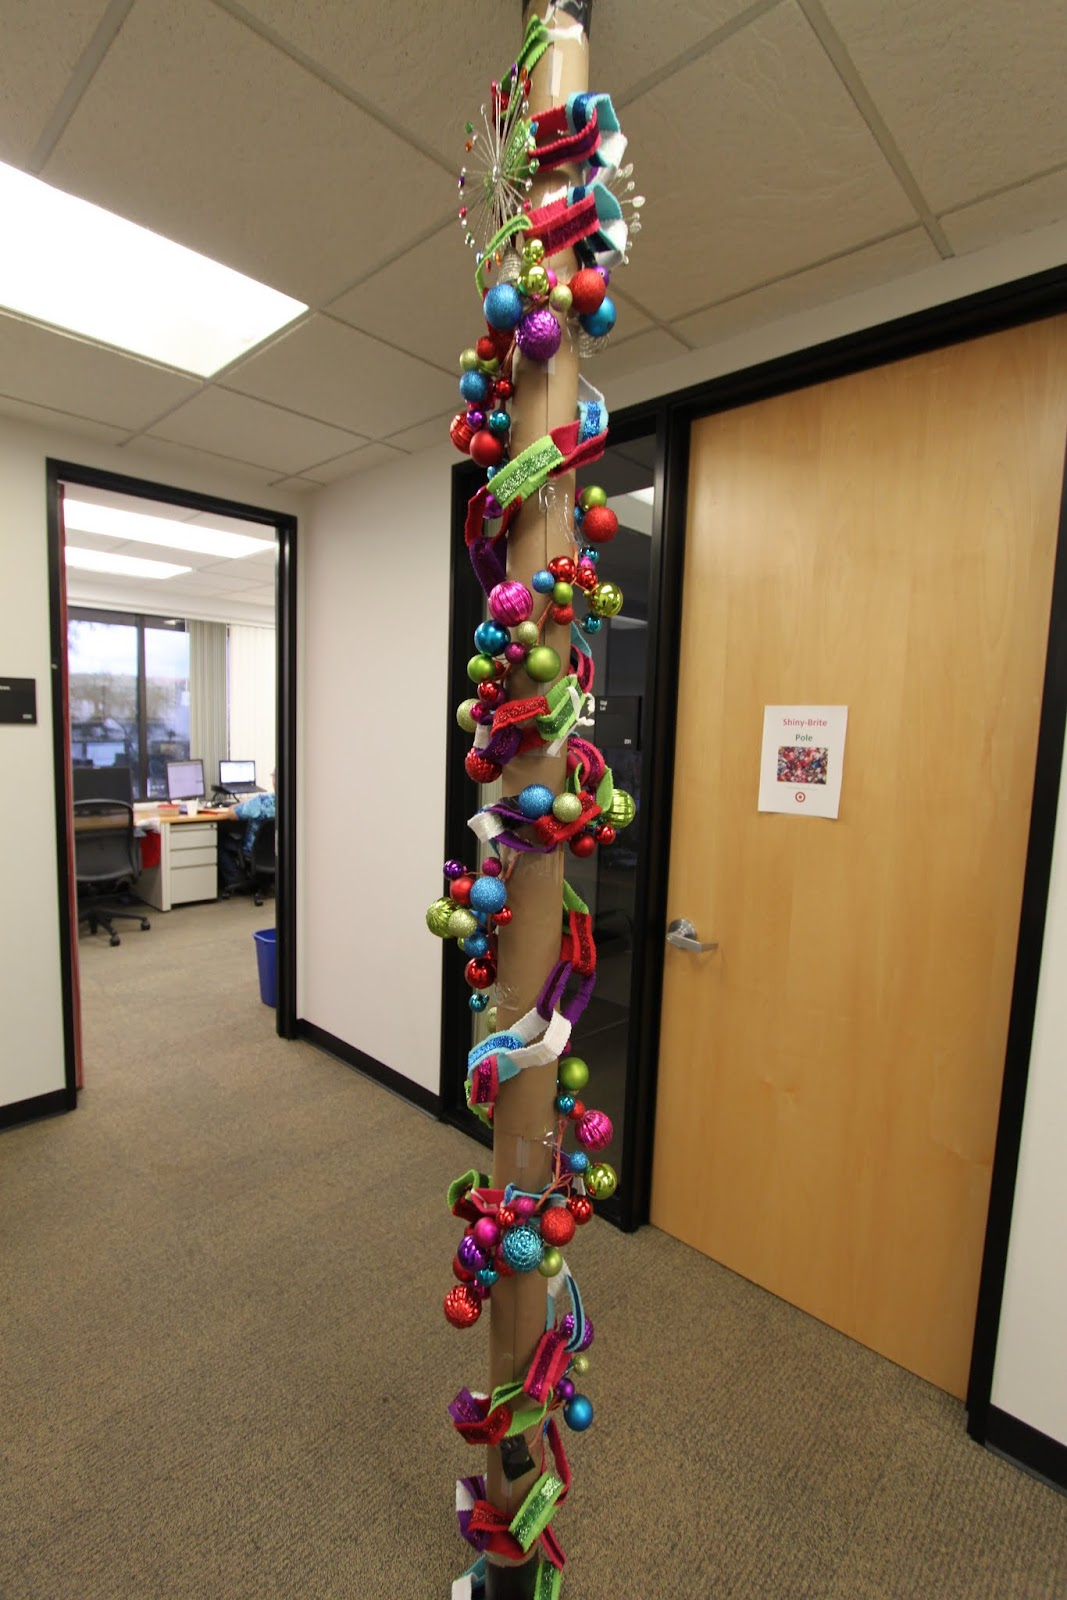 office decorations for christmas. Office Christmas Decor. Pole Decorating Contest Decor Decorations For C